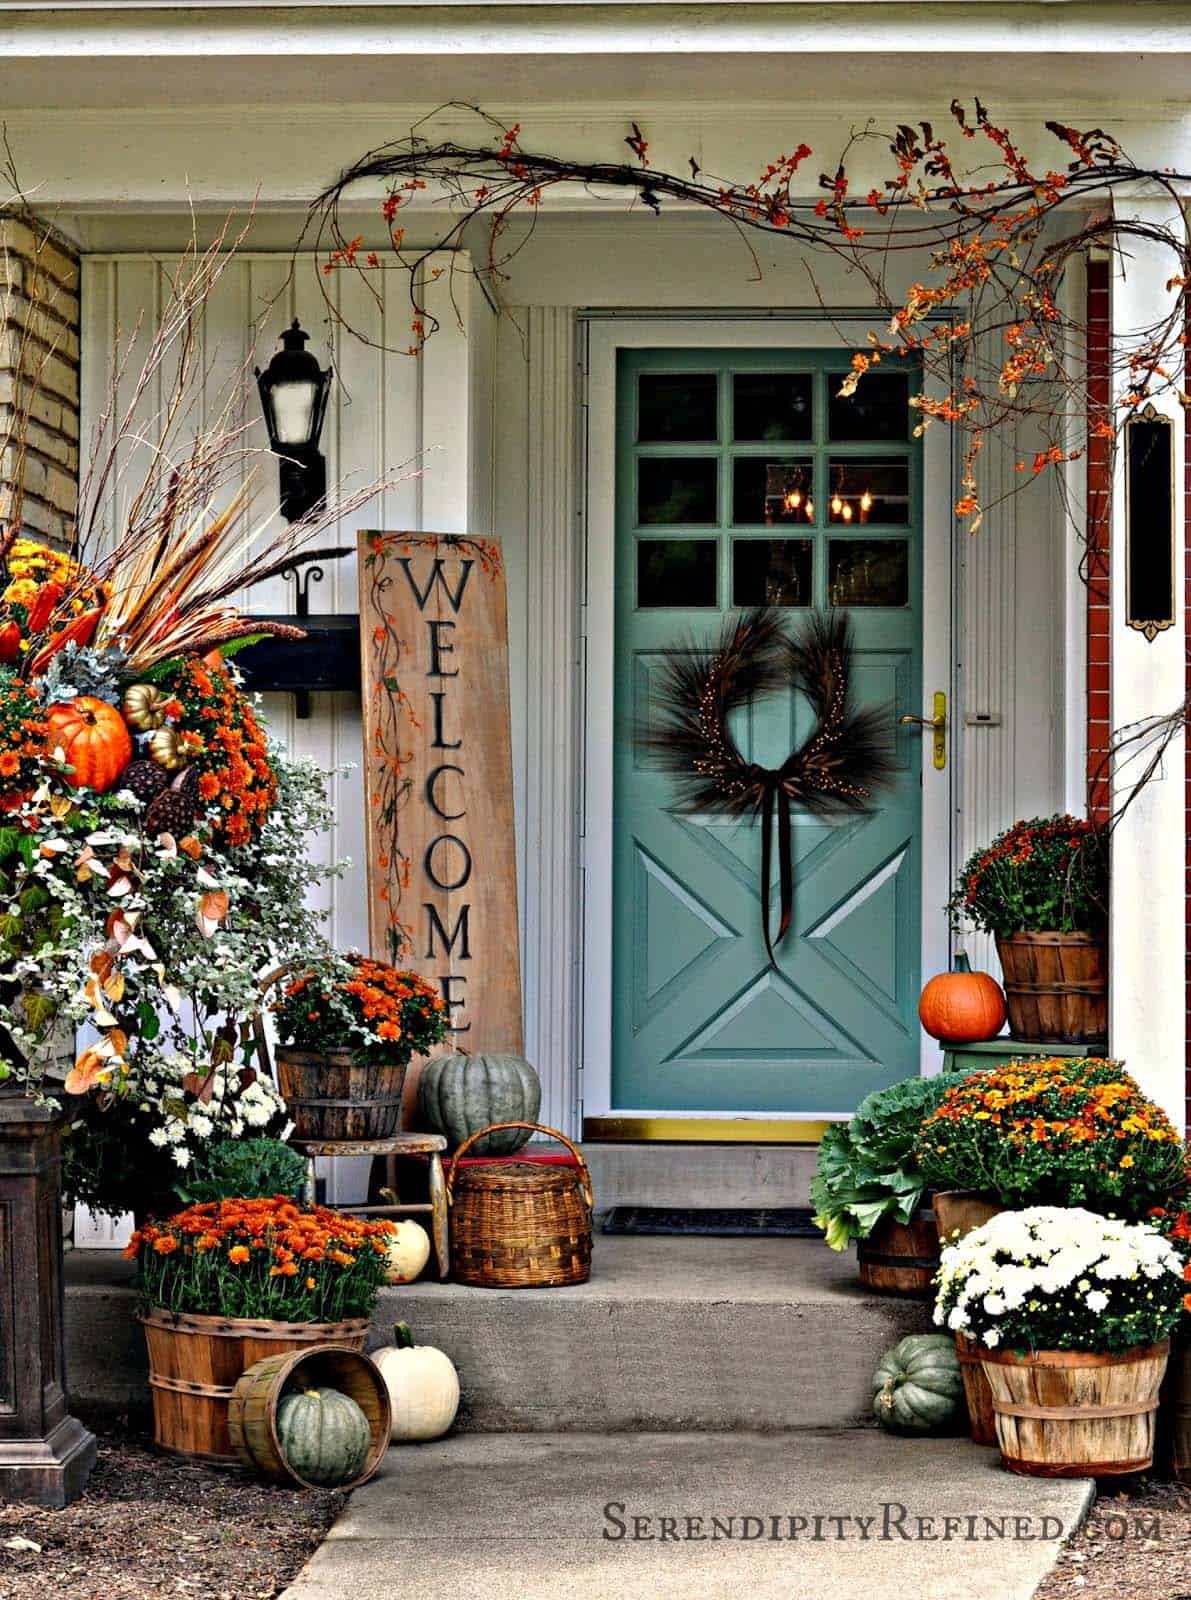 Genial Fall Front Door Decorating Ideas 32 1 Kindesign